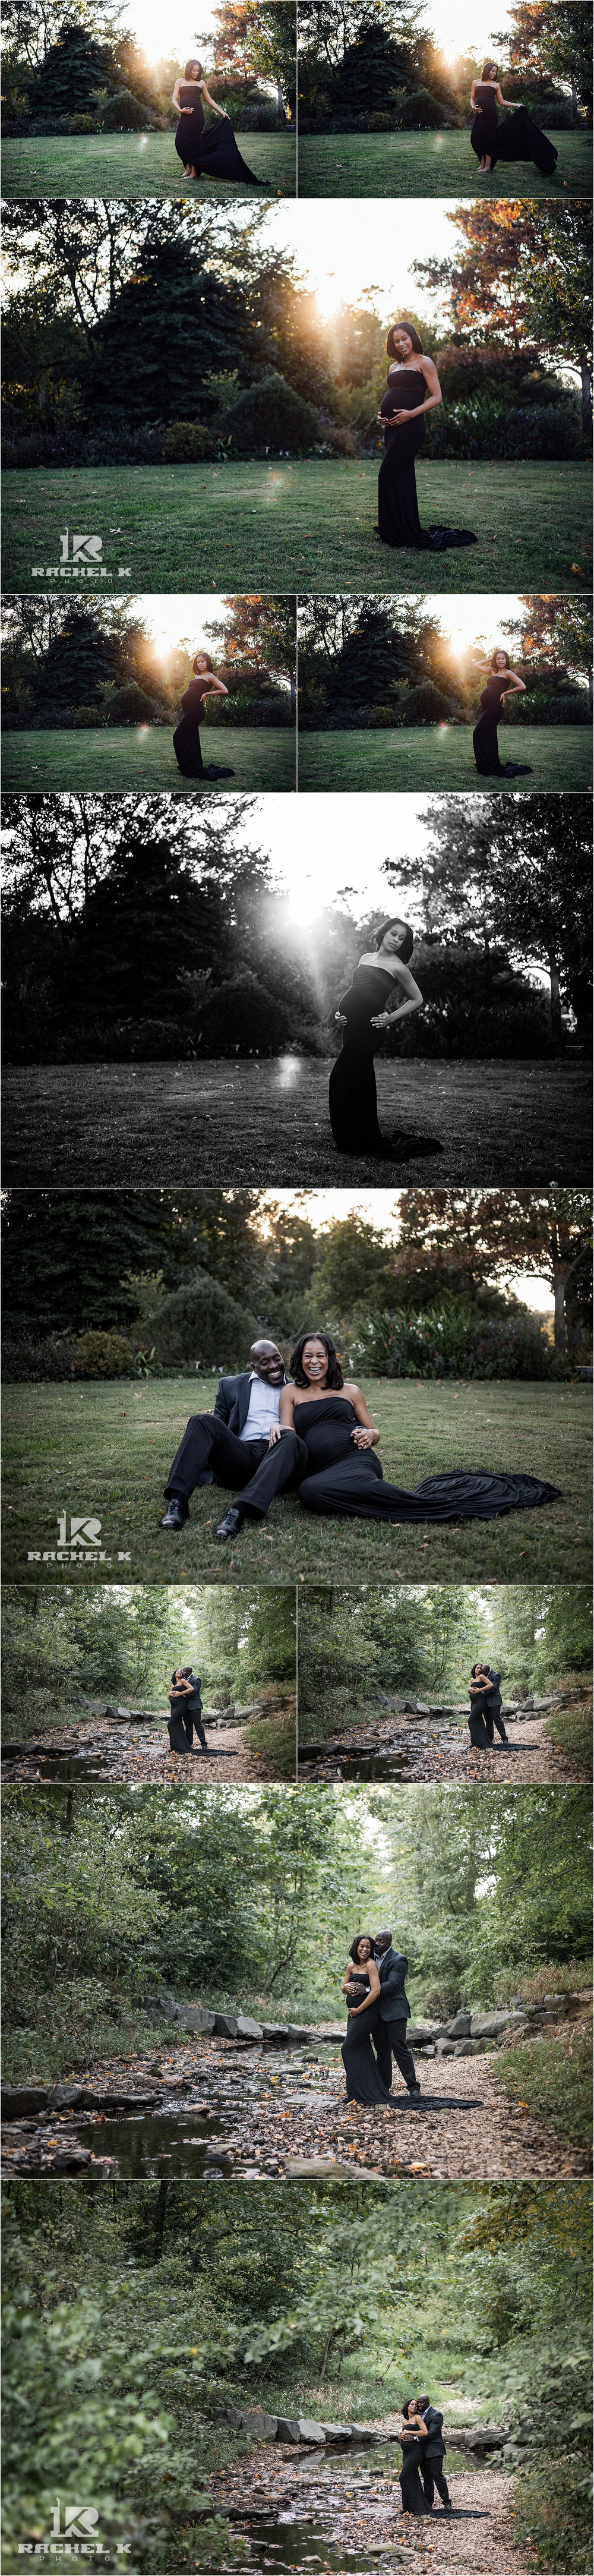 Chantilly Virginia maternity session by Rachel K Photo